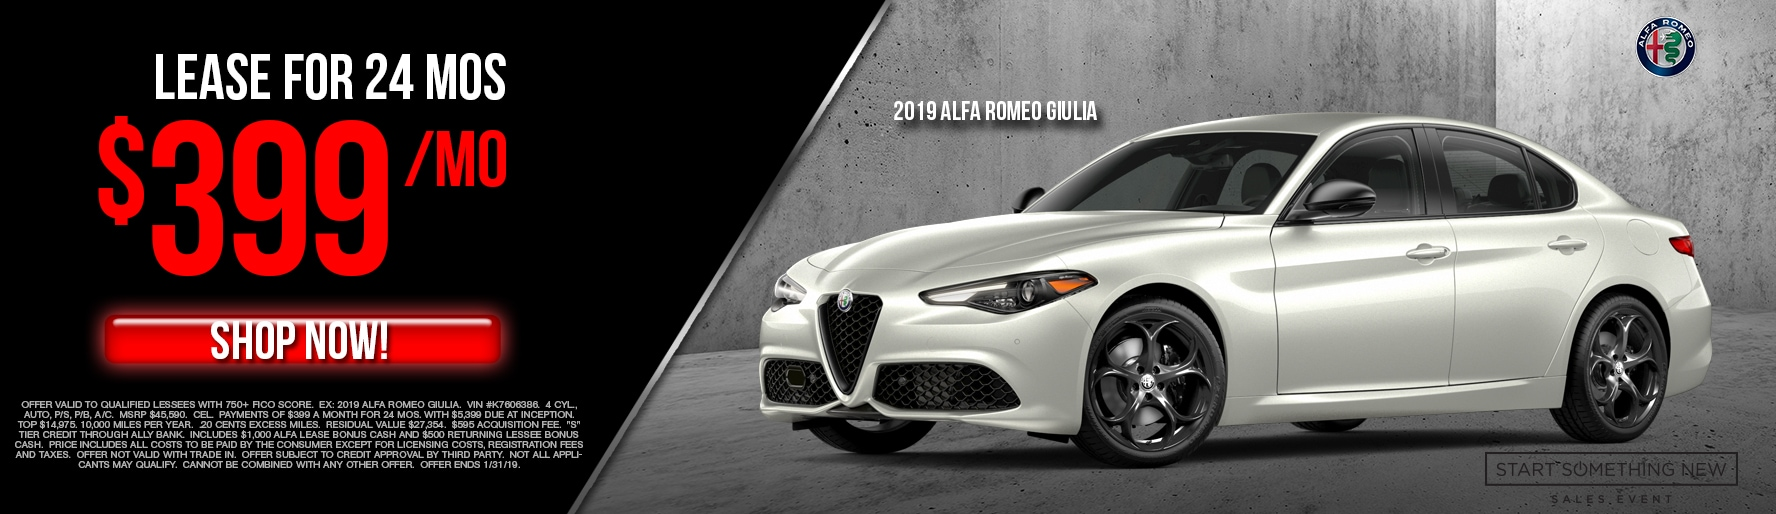 Alfa Romeo Lease Specials And Deals Lease A New Alfa Romeo Today In